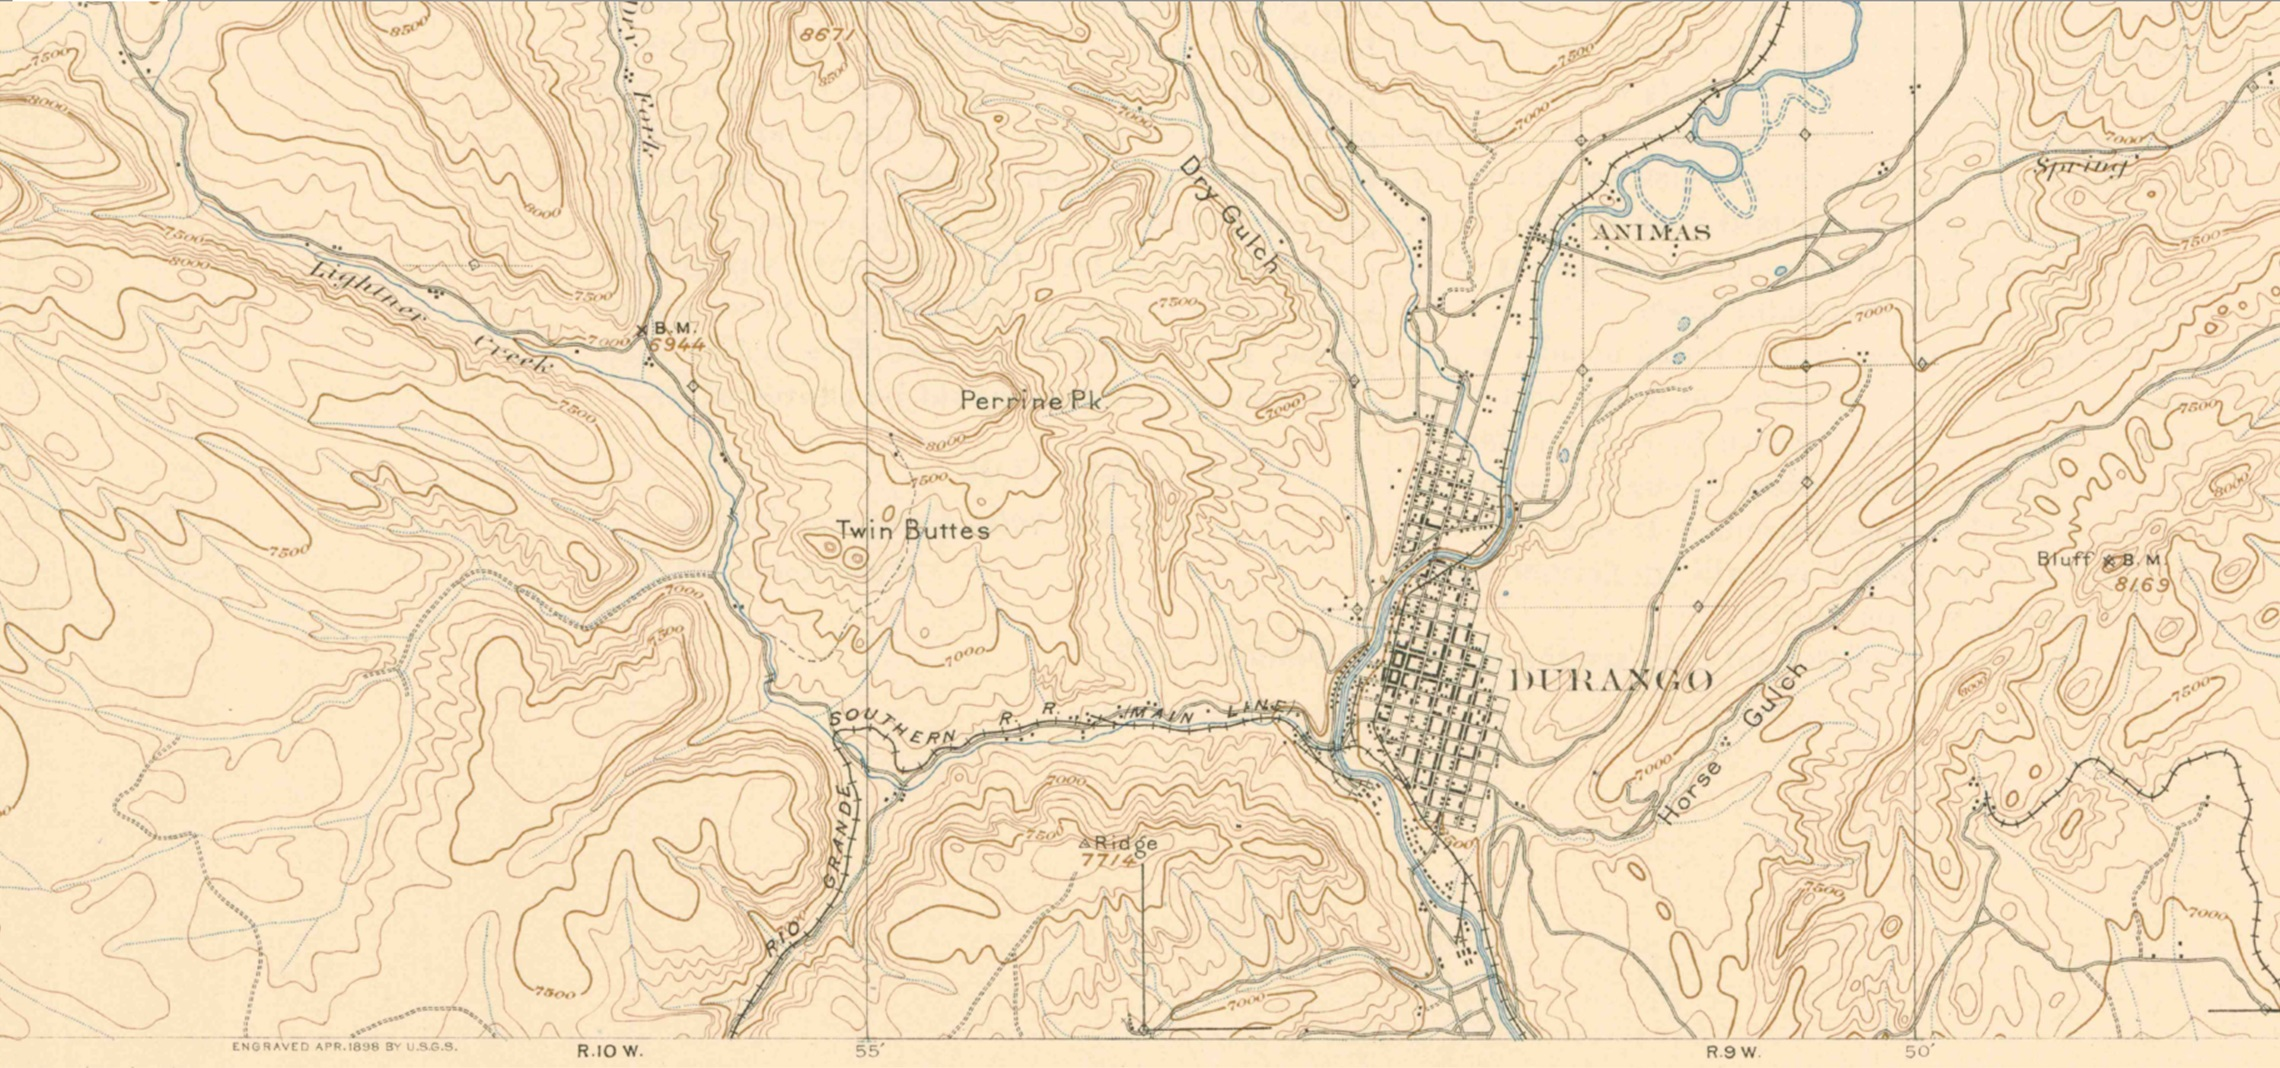 Durango History via Topo Maps on